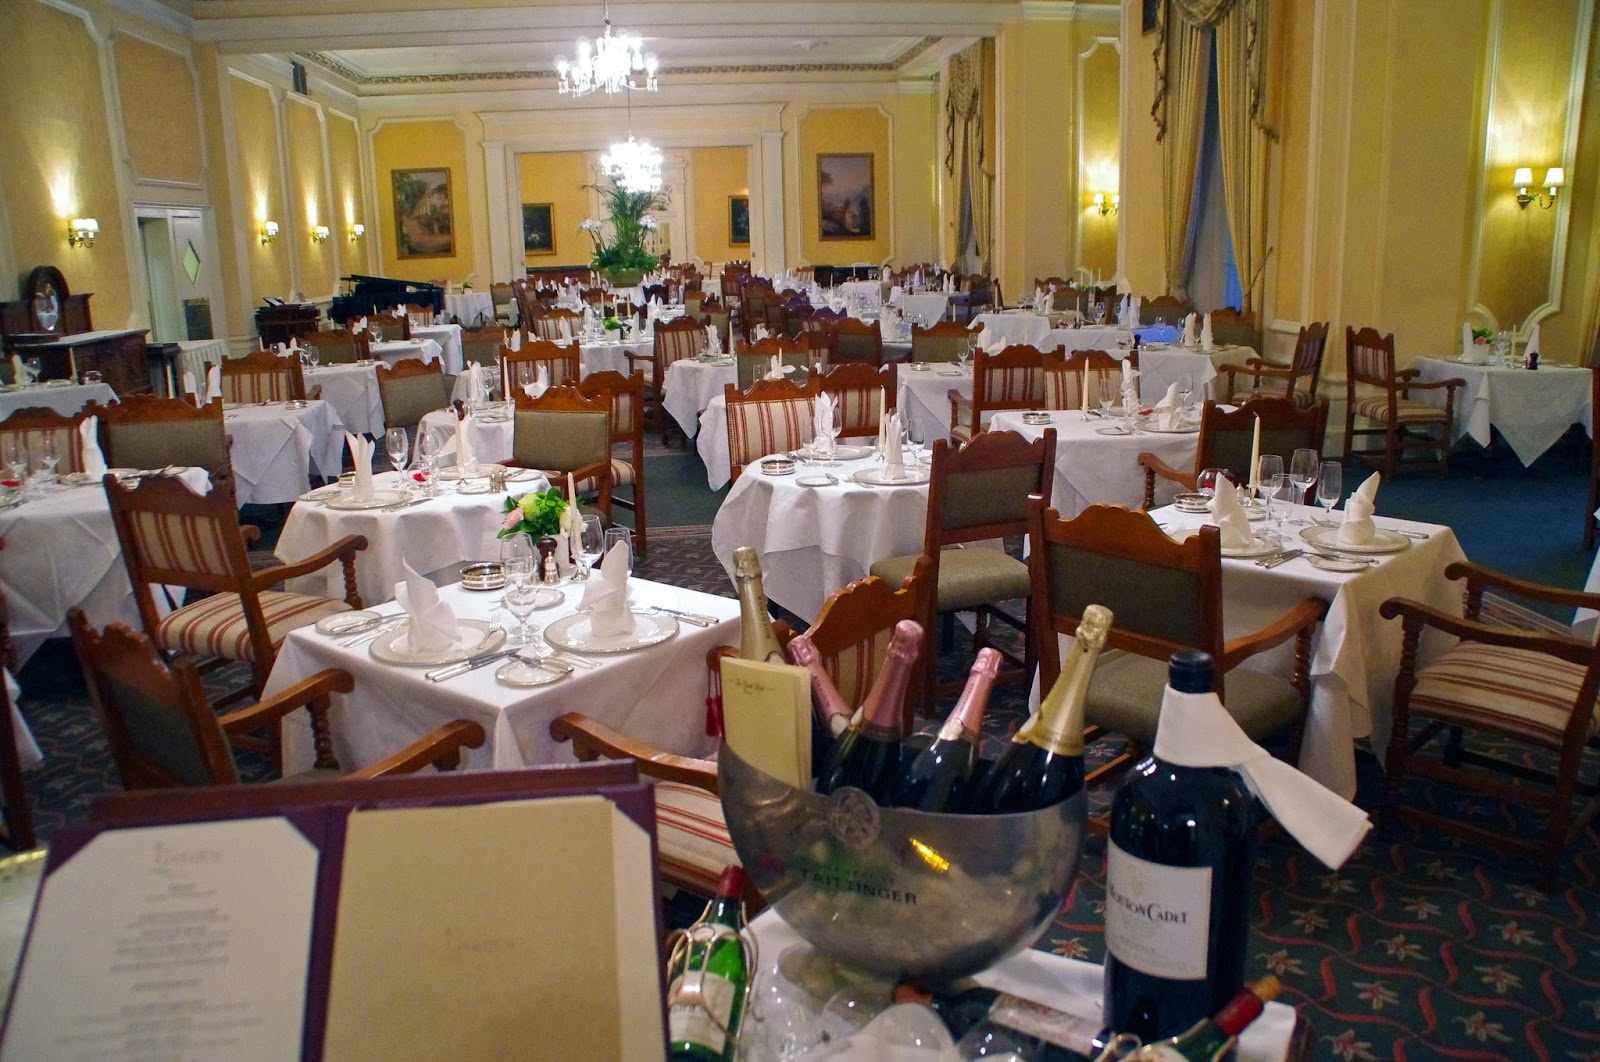 The Grand Hotel Eastbourne Garden Restaurant